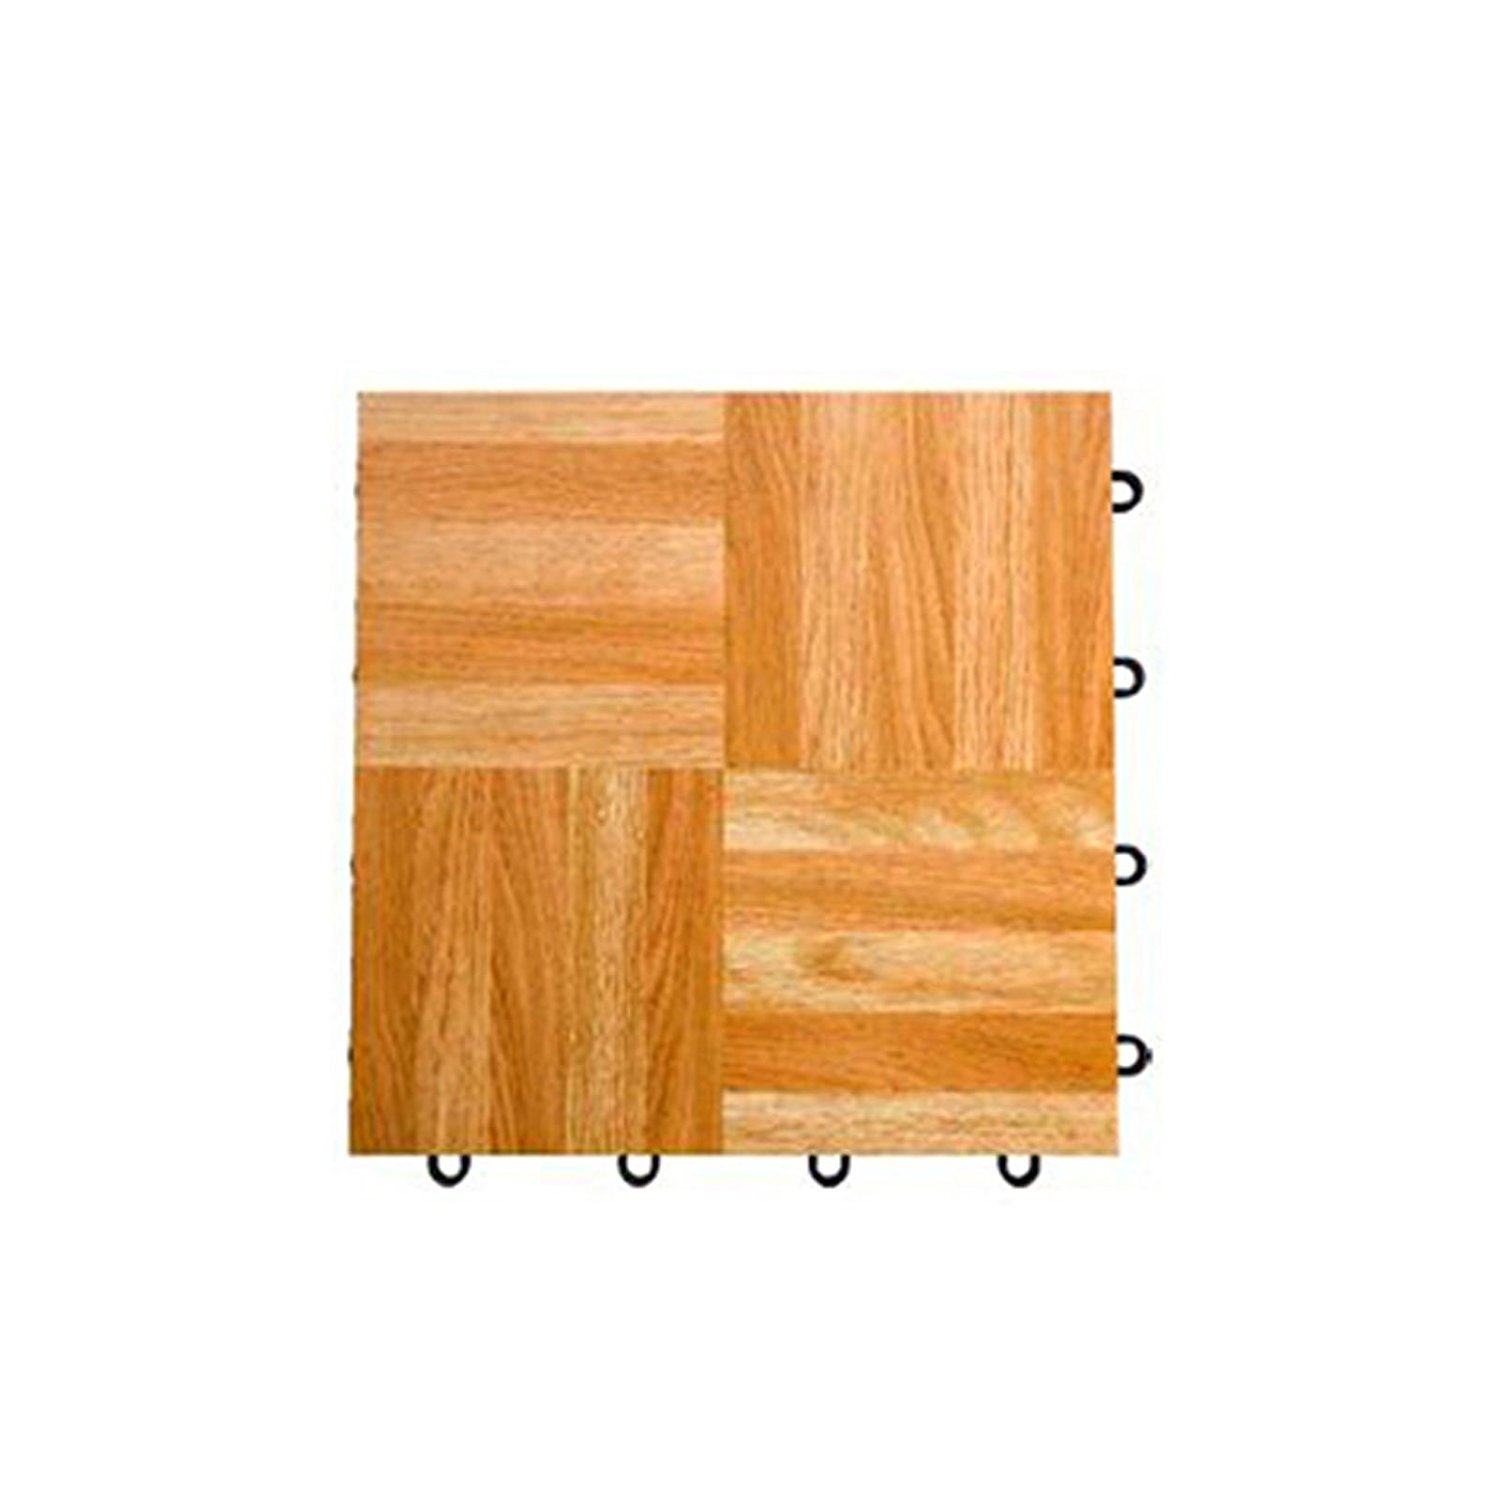 12 Interlocking Modular Grid Loc Tap Dance Tiles Oak 9 Piece